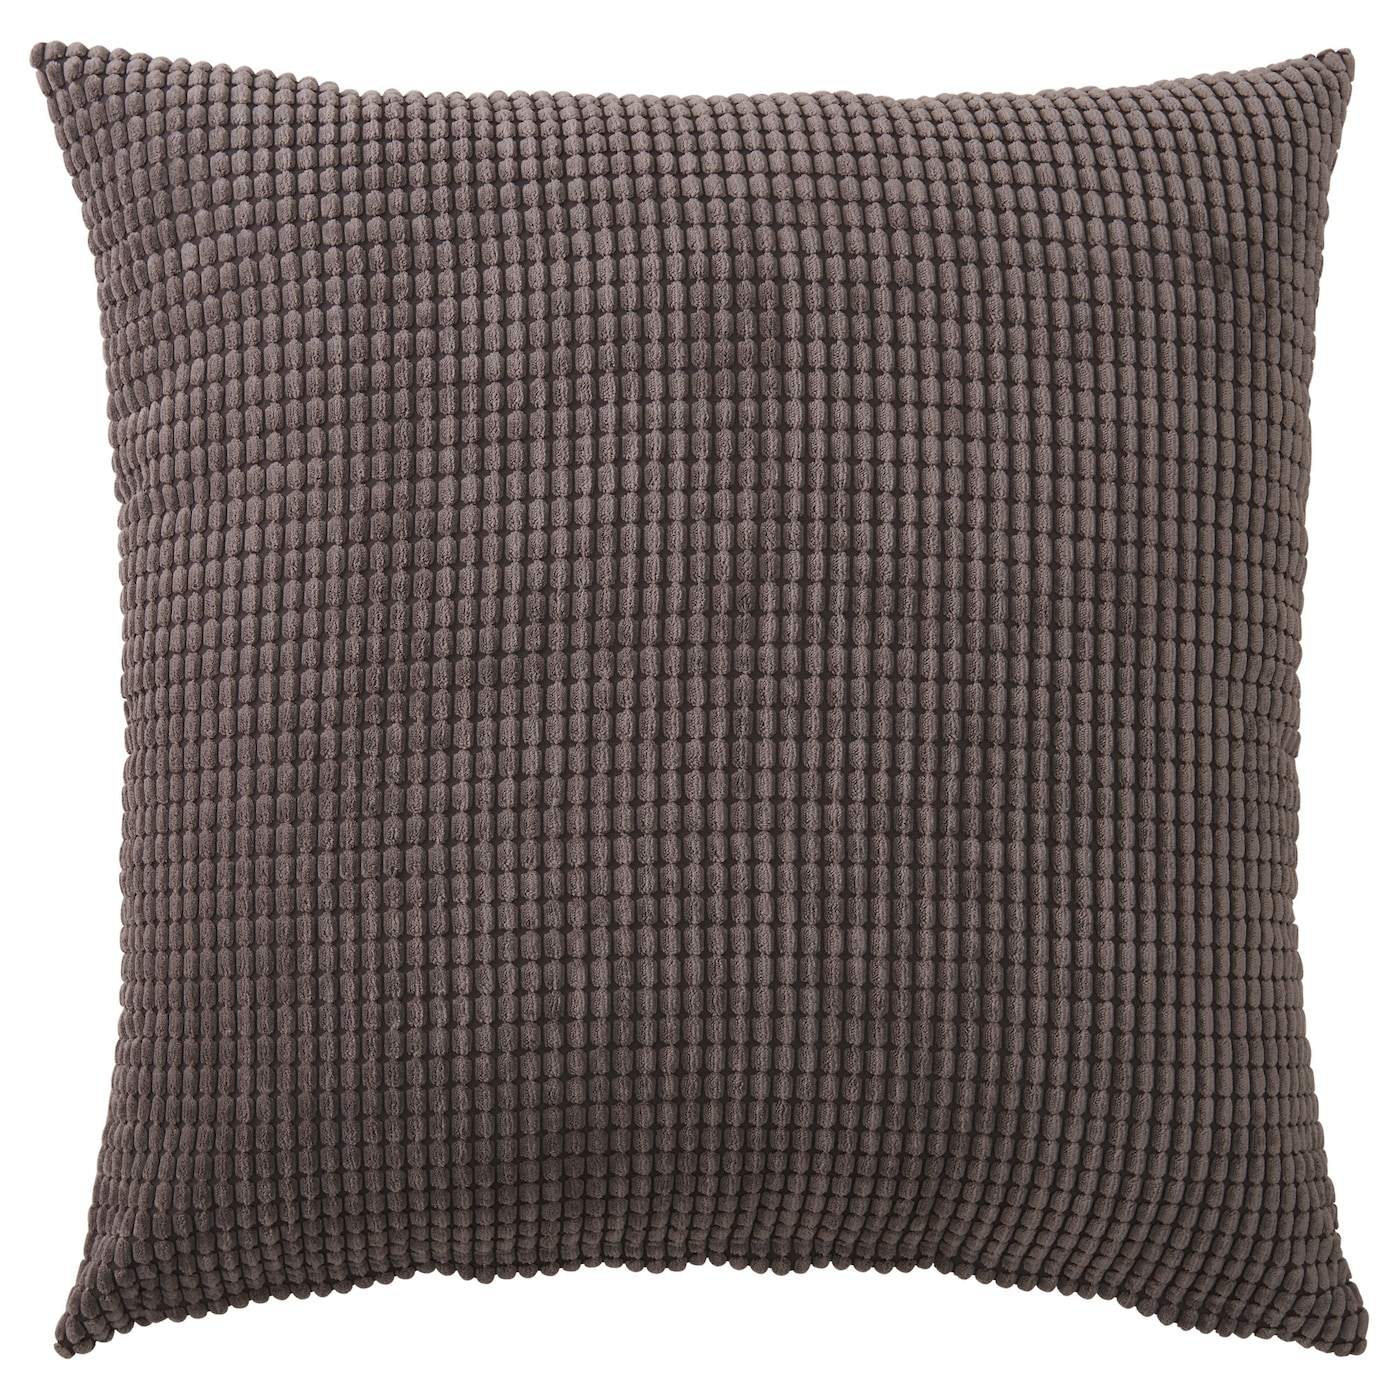 GULLKLOCKA Cushion cover Grey 65x65 cm IKEA